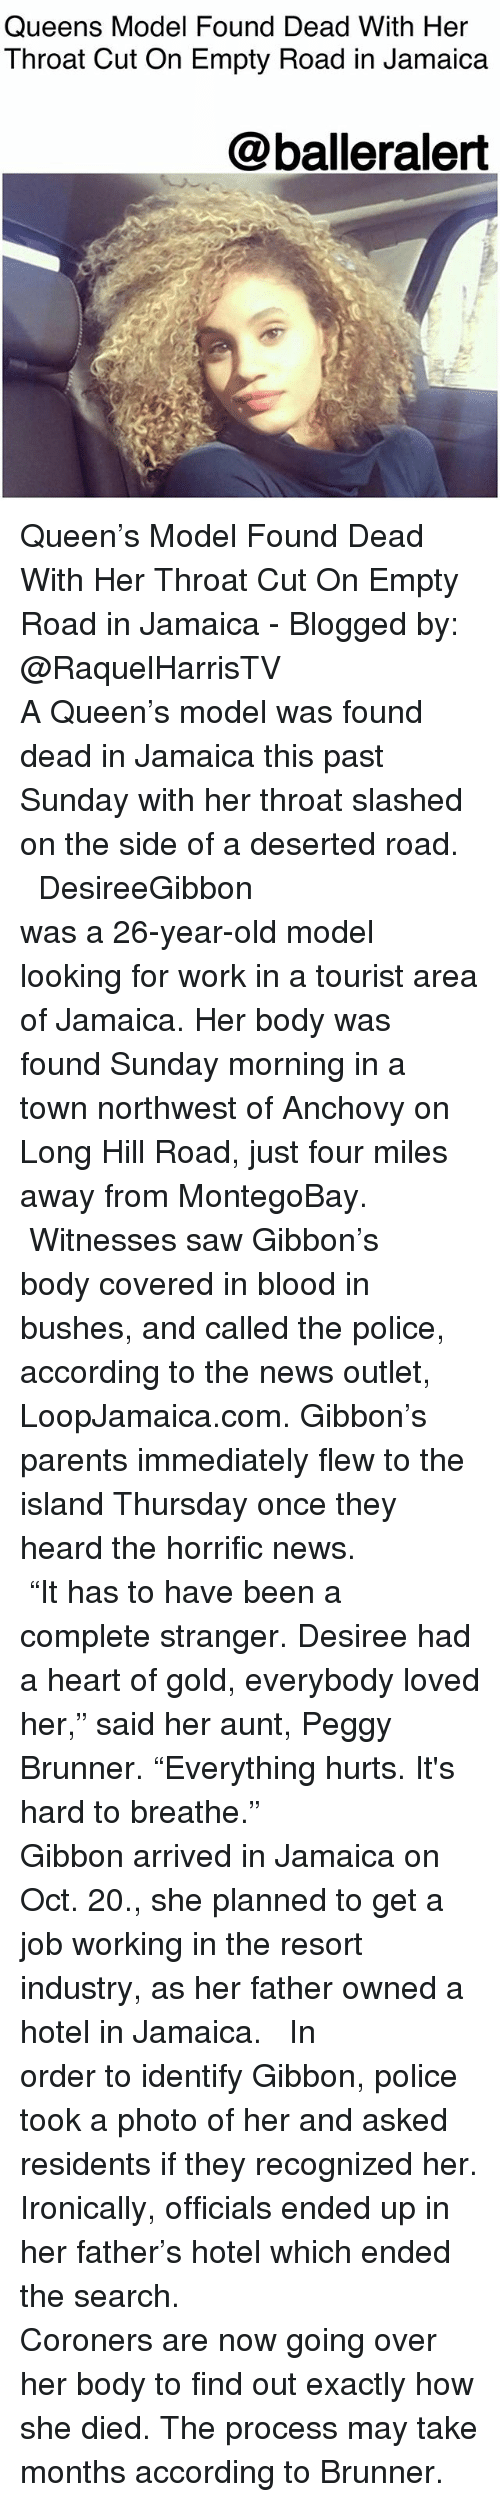 """Memes, News, and Parents: Queens Model Found Dead With Her  Throat Cut On Empty Road in Jamaica  @balleralert Queen's Model Found Dead With Her Throat Cut On Empty Road in Jamaica - Blogged by: @RaquelHarrisTV ⠀⠀⠀⠀⠀⠀⠀⠀⠀ ⠀⠀⠀⠀⠀⠀⠀⠀⠀ A Queen's model was found dead in Jamaica this past Sunday with her throat slashed on the side of a deserted road. ⠀⠀⠀⠀⠀⠀⠀⠀⠀ ⠀⠀⠀⠀⠀⠀⠀⠀⠀ DesireeGibbon was a 26-year-old model looking for work in a tourist area of Jamaica. Her body was found Sunday morning in a town northwest of Anchovy on Long Hill Road, just four miles away from MontegoBay. ⠀⠀⠀⠀⠀⠀⠀⠀⠀ ⠀⠀⠀⠀⠀⠀⠀⠀⠀ Witnesses saw Gibbon's body covered in blood in bushes, and called the police, according to the news outlet, LoopJamaica.com. Gibbon's parents immediately flew to the island Thursday once they heard the horrific news. ⠀⠀⠀⠀⠀⠀⠀⠀⠀ ⠀⠀⠀⠀⠀⠀⠀⠀⠀ """"It has to have been a complete stranger. Desiree had a heart of gold, everybody loved her,"""" said her aunt, Peggy Brunner. """"Everything hurts. It's hard to breathe."""" ⠀⠀⠀⠀⠀⠀⠀⠀⠀ ⠀⠀⠀⠀⠀⠀⠀⠀⠀ Gibbon arrived in Jamaica on Oct. 20., she planned to get a job working in the resort industry, as her father owned a hotel in Jamaica. ⠀⠀⠀⠀⠀⠀⠀⠀⠀ ⠀⠀⠀⠀⠀⠀⠀⠀⠀ In order to identify Gibbon, police took a photo of her and asked residents if they recognized her. Ironically, officials ended up in her father's hotel which ended the search. ⠀⠀⠀⠀⠀⠀⠀⠀⠀ ⠀⠀⠀⠀⠀⠀⠀⠀⠀ Coroners are now going over her body to find out exactly how she died. The process may take months according to Brunner."""